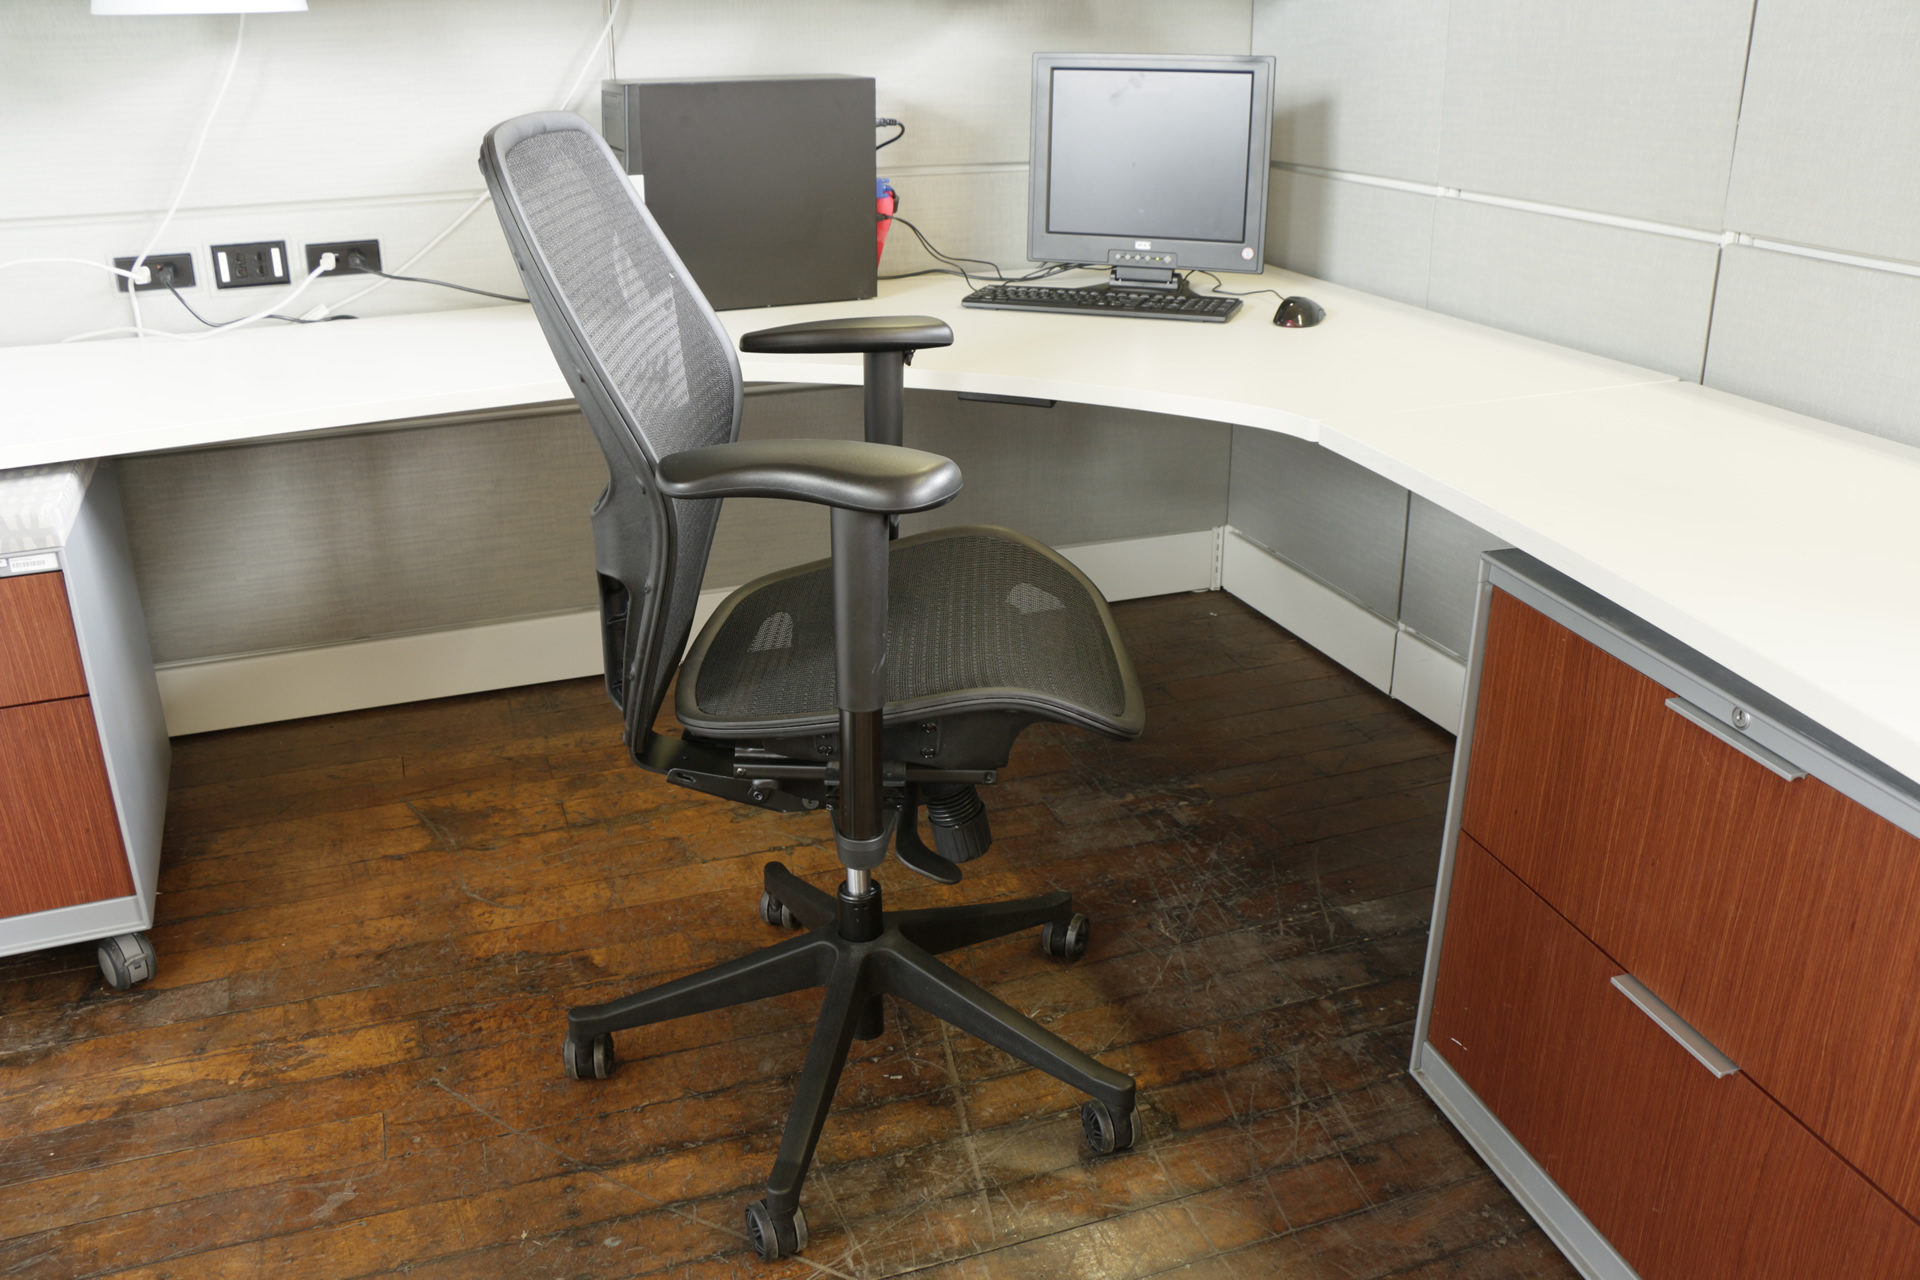 peartreeofficefurniture_peartreeofficefurniture_mg_3379.jpg